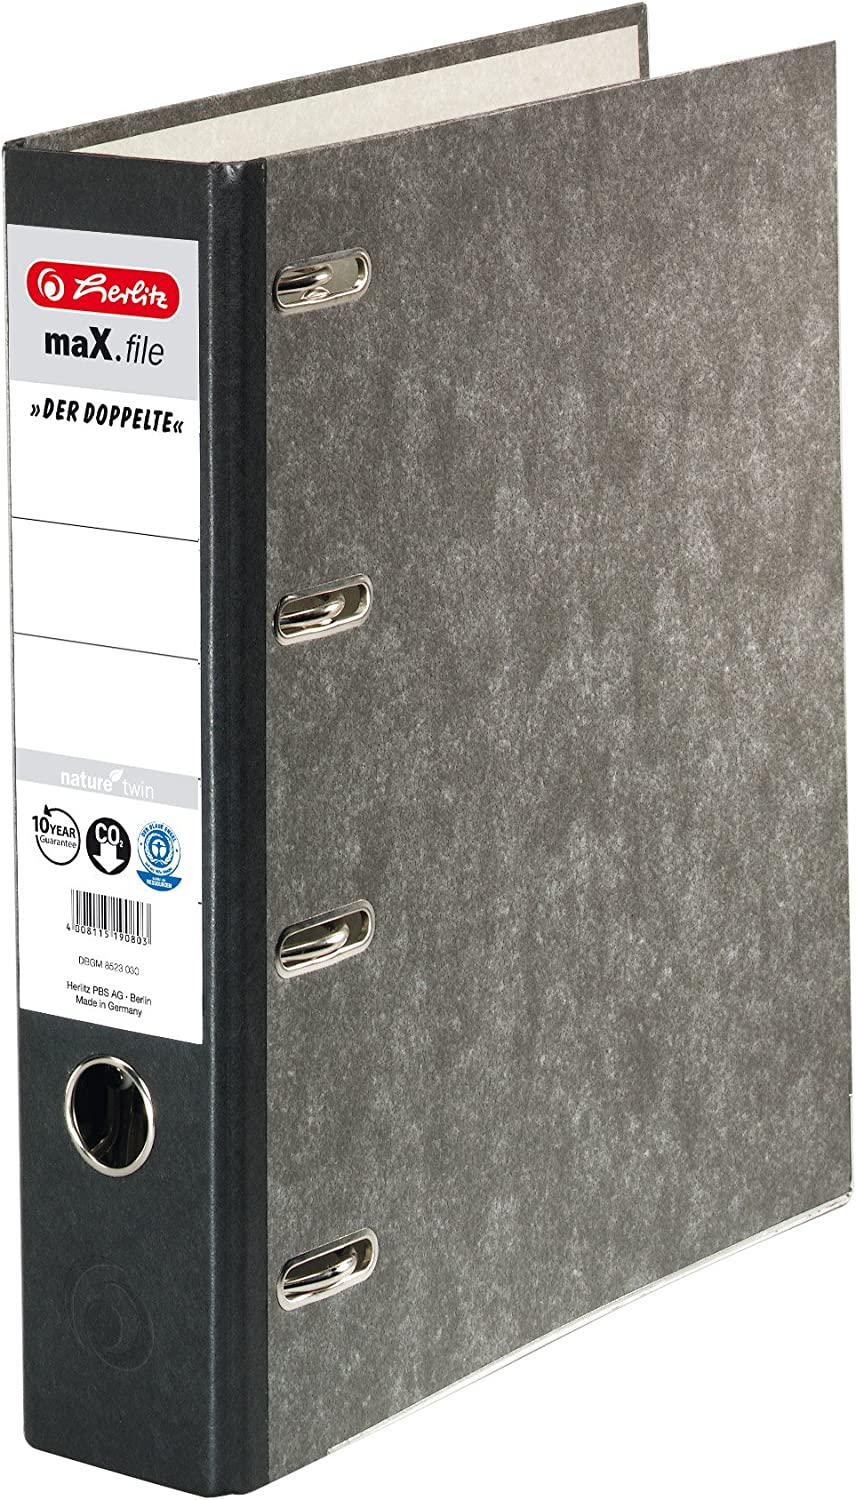 Herlitz max.file Nature A4 Double-Lever Arch File Black Minneapolis Mall - Indefinitely